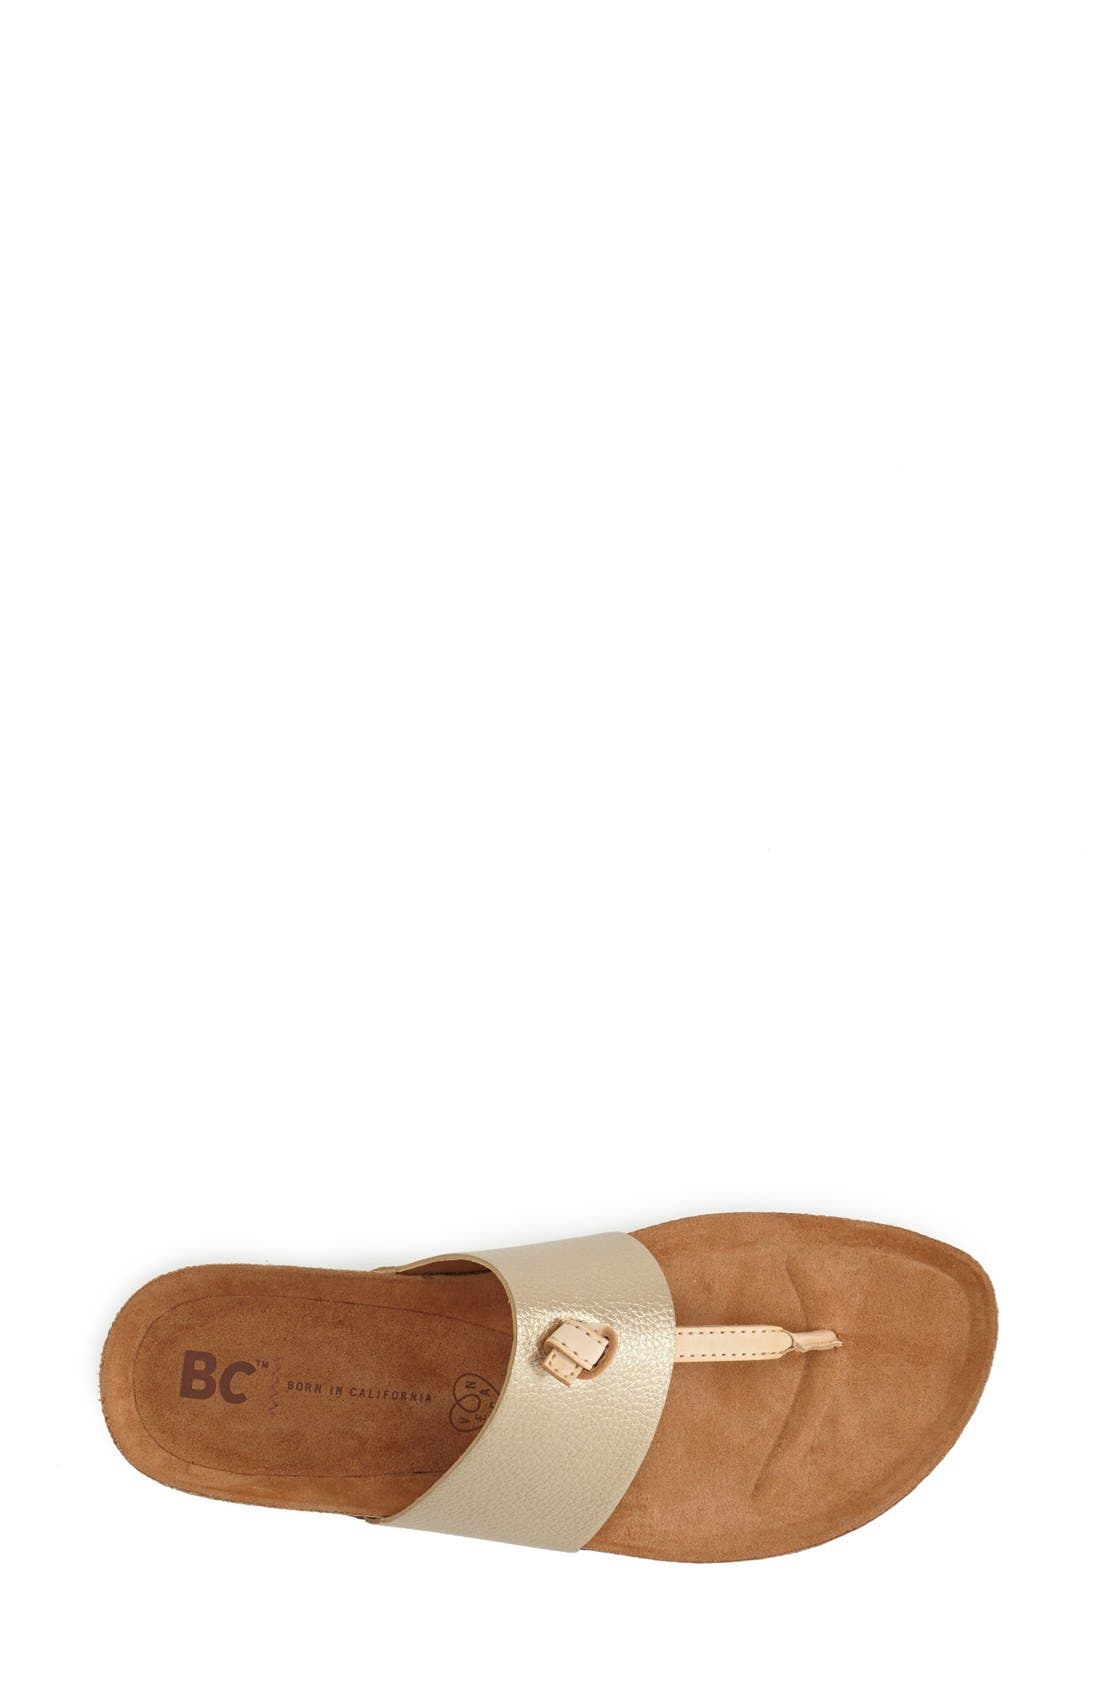 Alternate Image 3  - BC Footwear 'Lynx' Faux Leather Thong Sandal (Women)